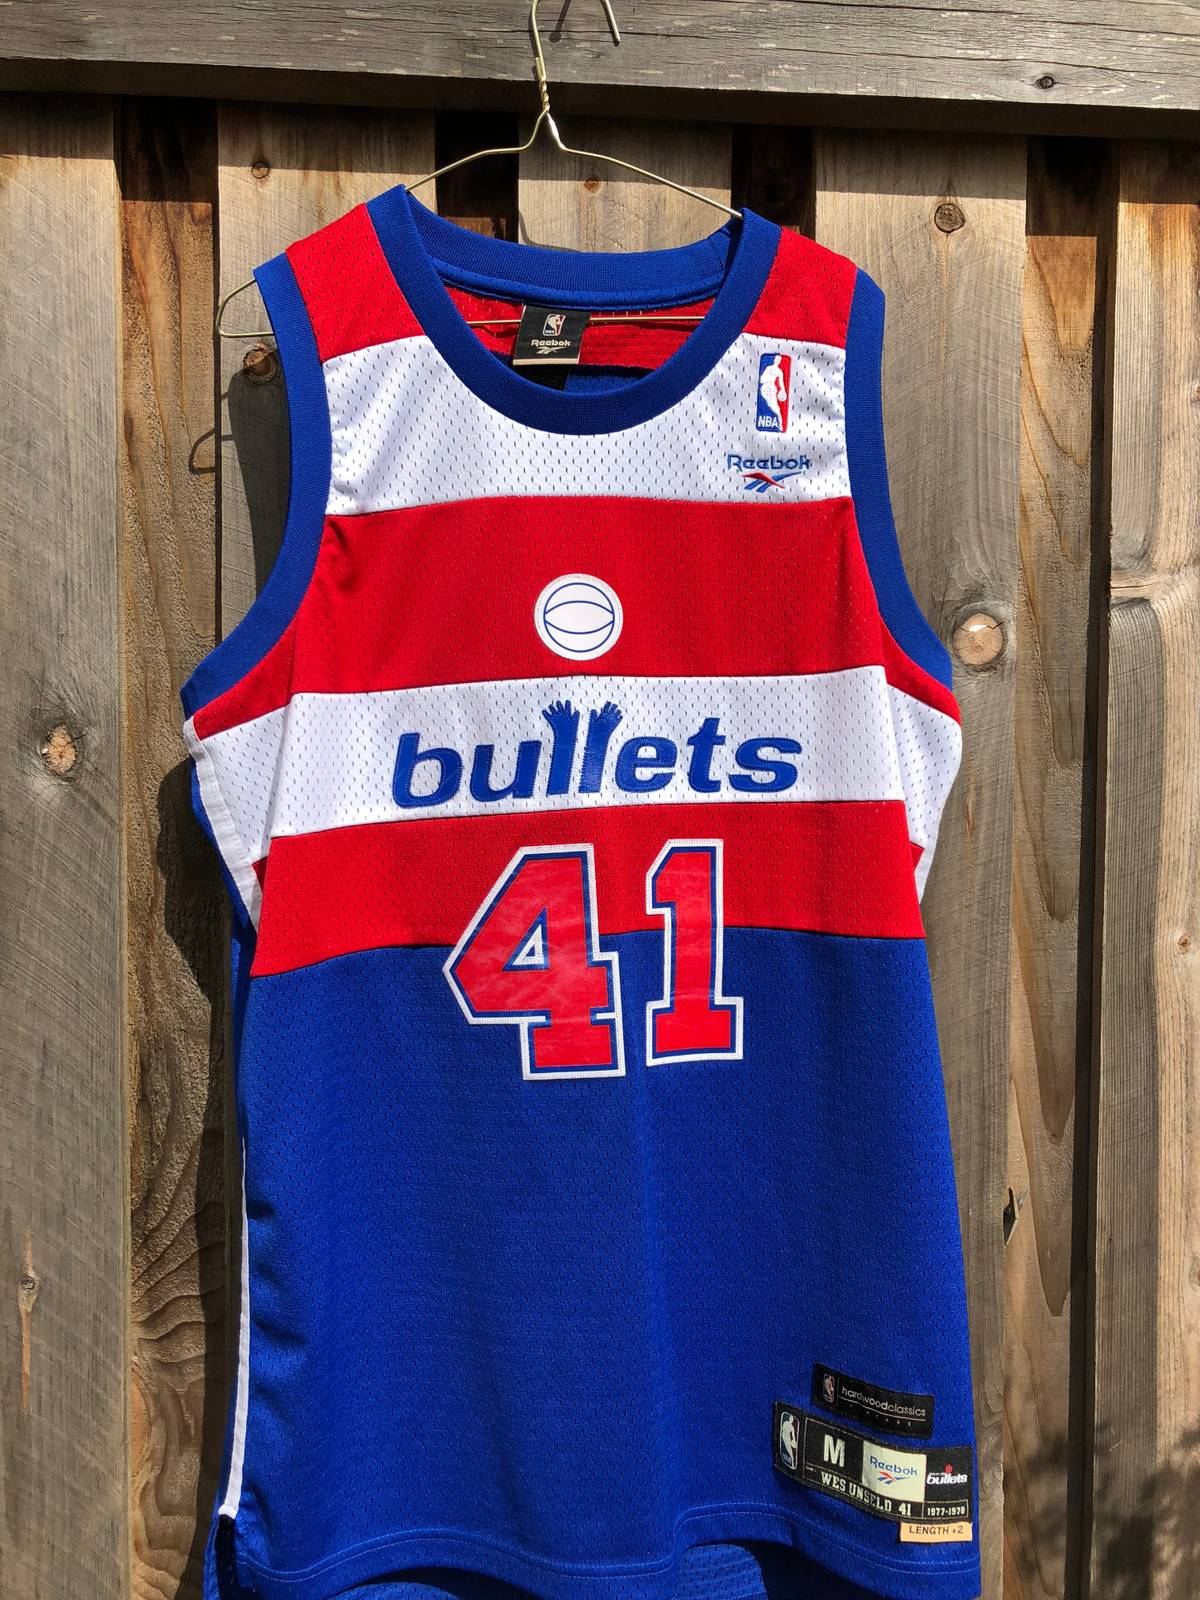 0eb3fc21035 ... reduced reebok hardwood classics bullets jersey wes unseld size m  jerseys for sale grailed 28257 13e4c